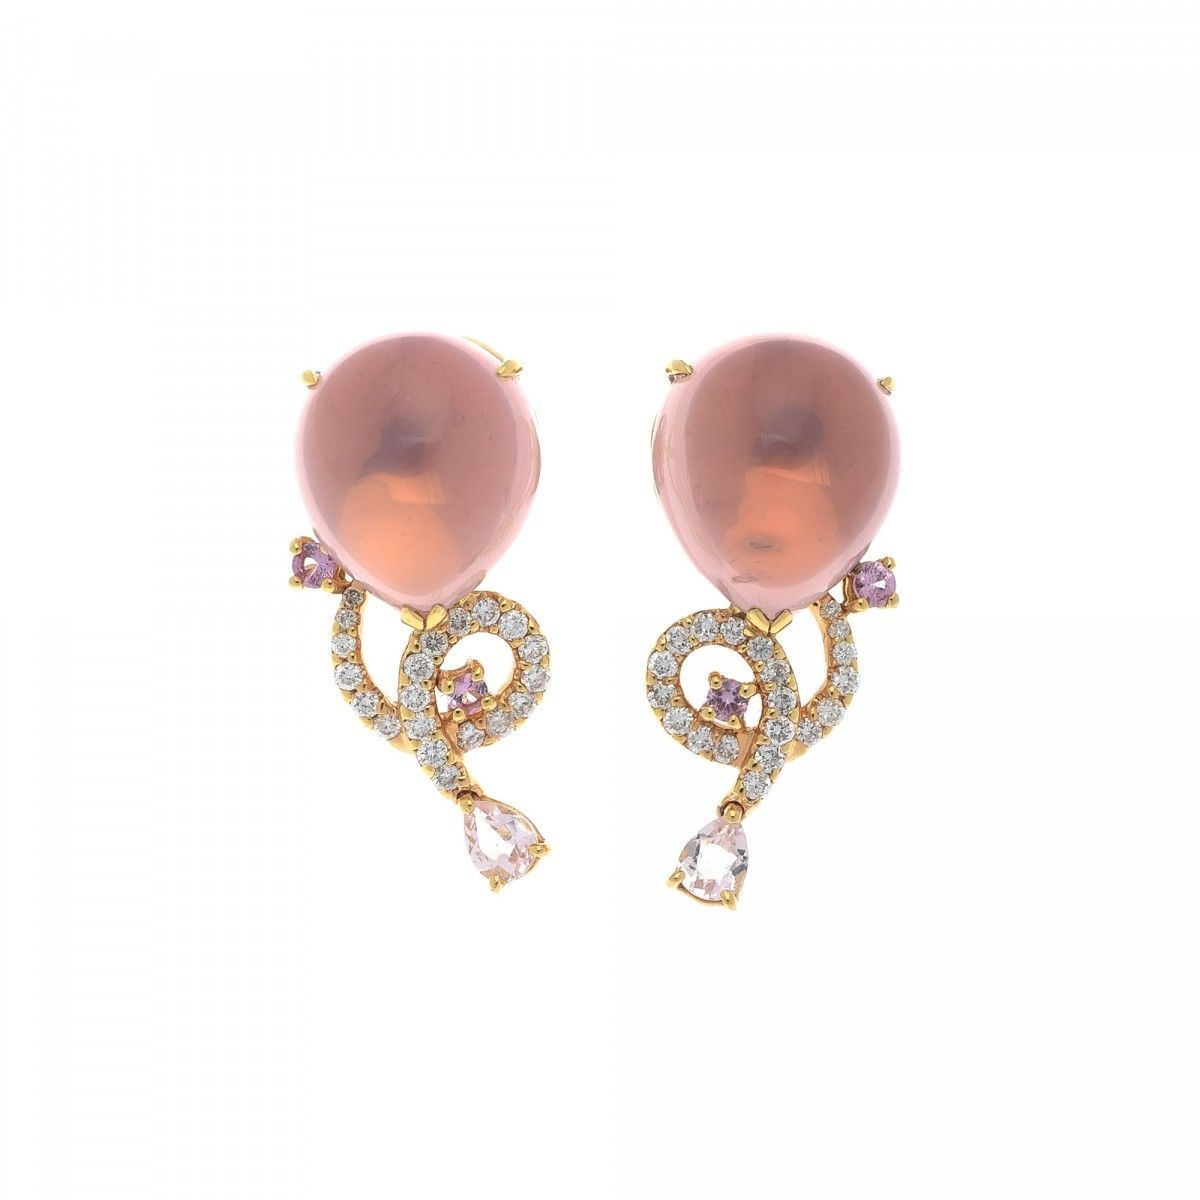 Estate Jewelry Colored Stone Diamond Earrings 18k Gold Lxrandco Pre Owned Luxury Vintage